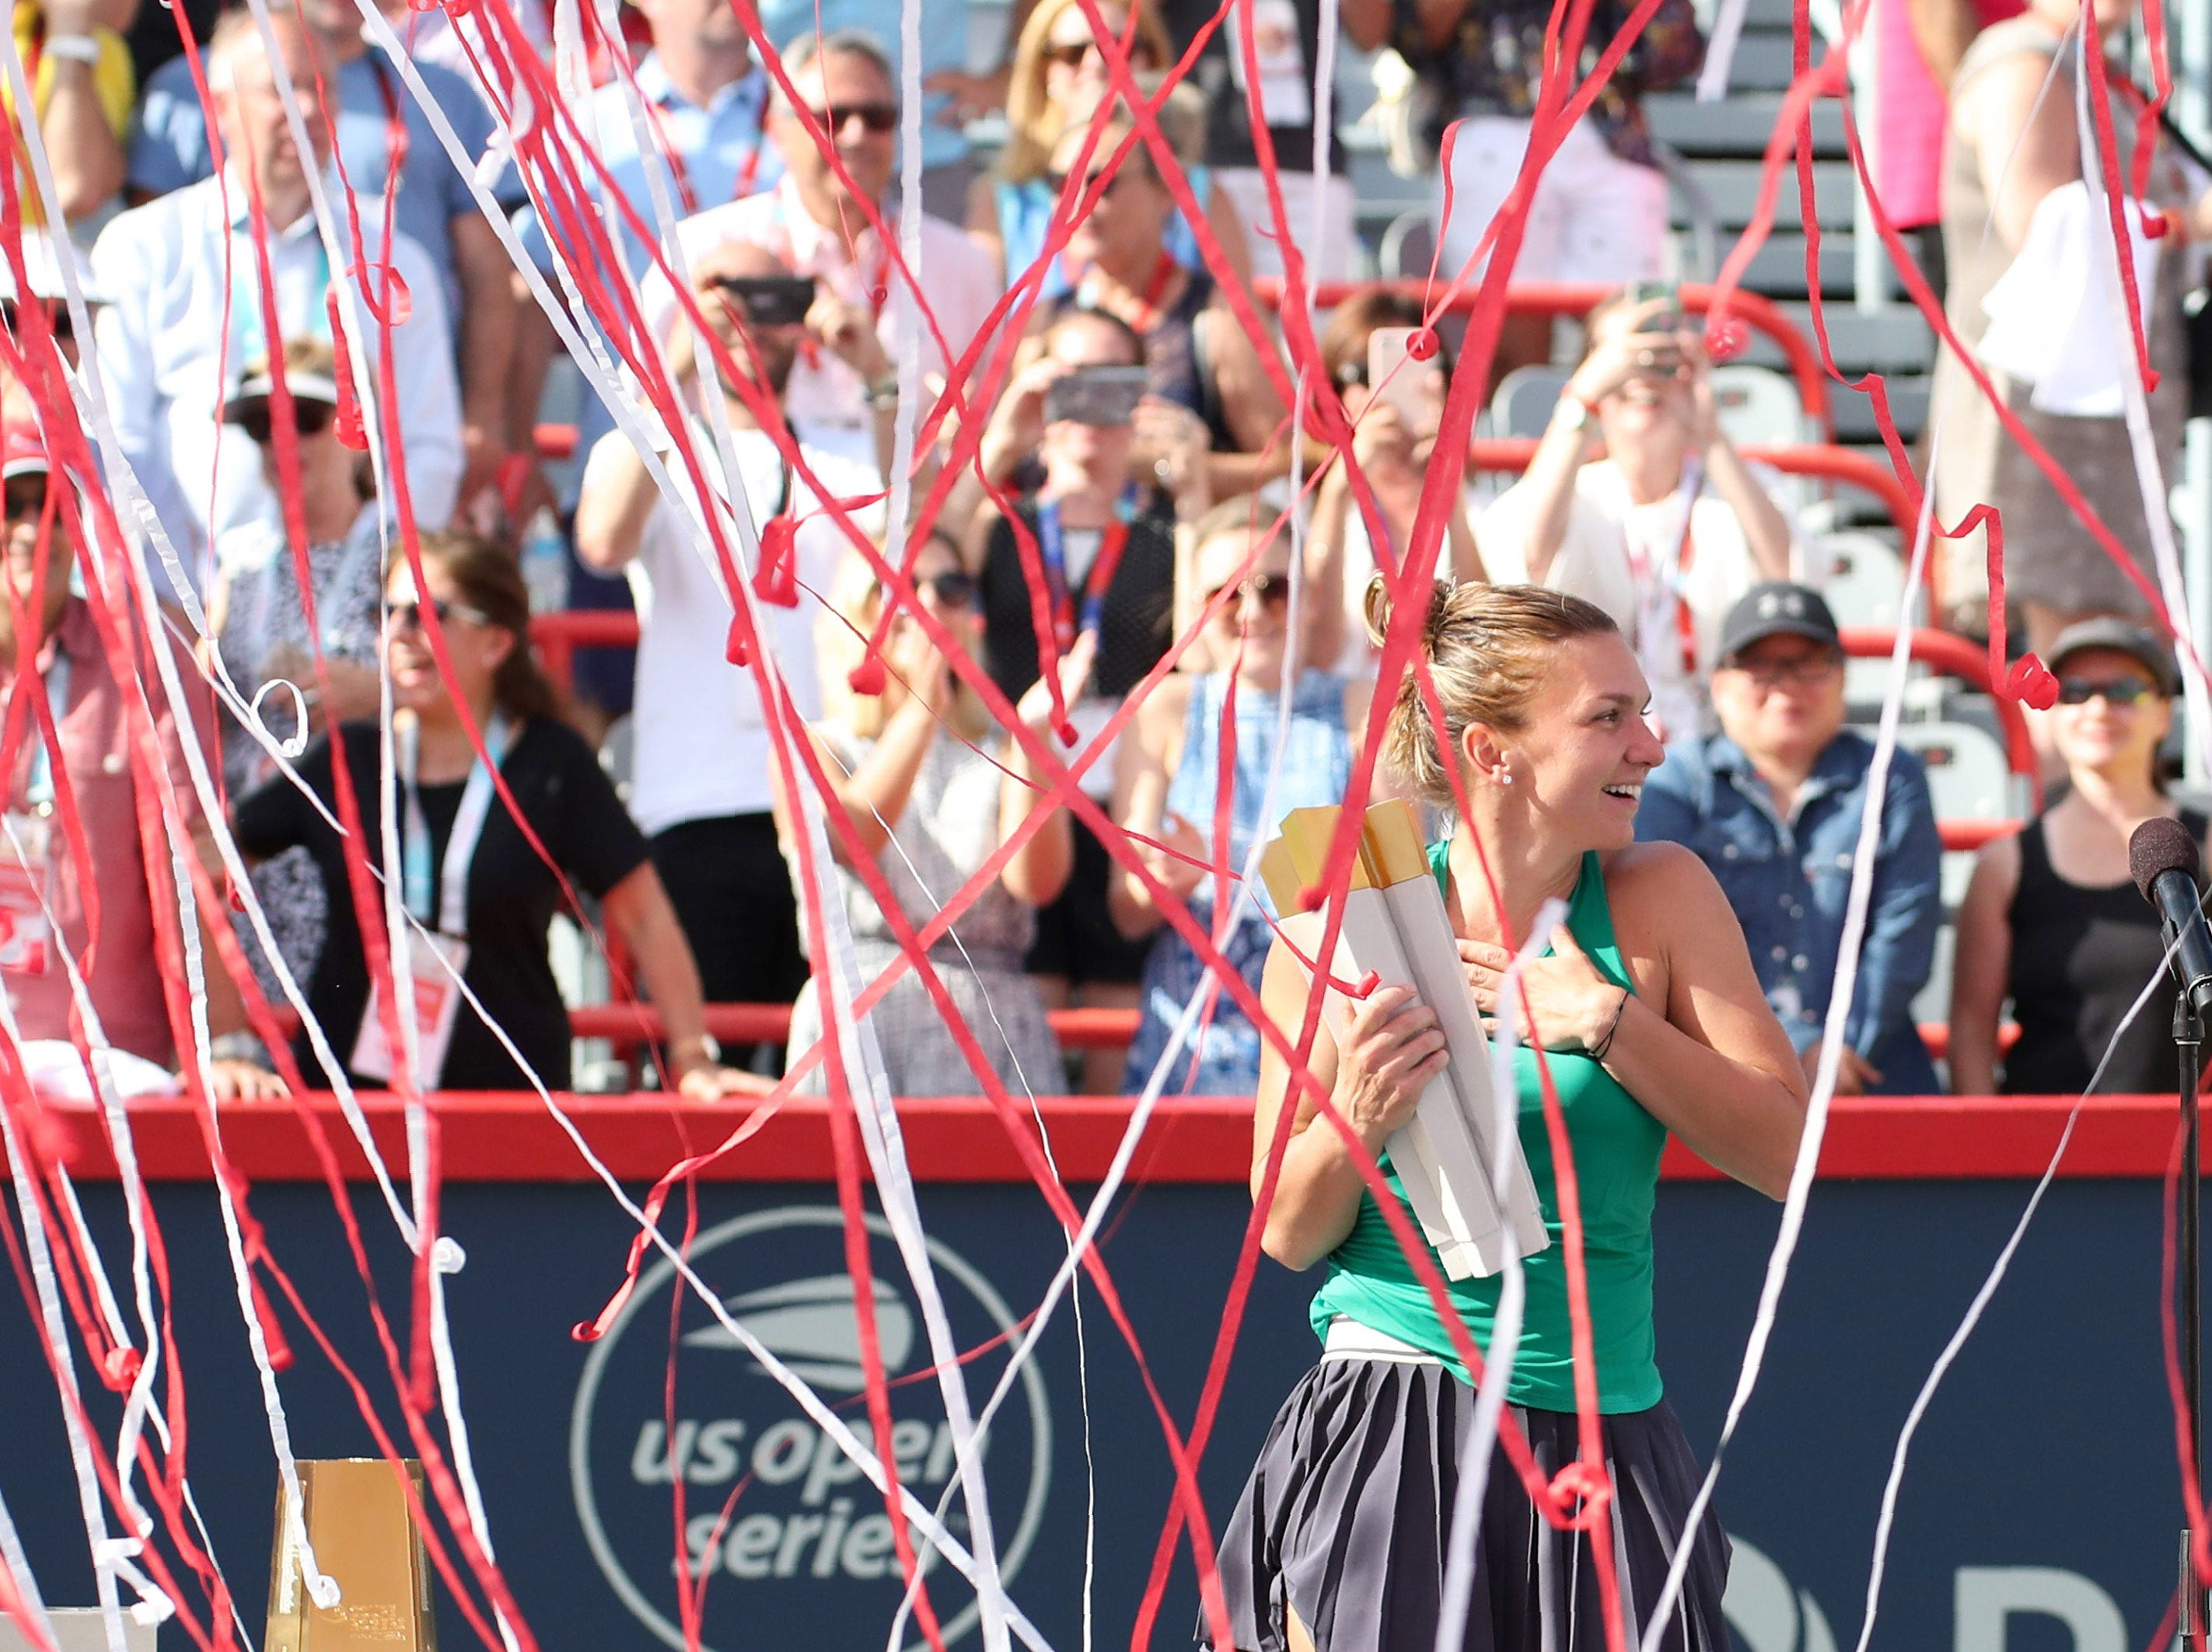 Aug. 12: Confetti falls on Simona Halep as she wins against Sloane Stephens in the Rogers Cup at Stade IGA.